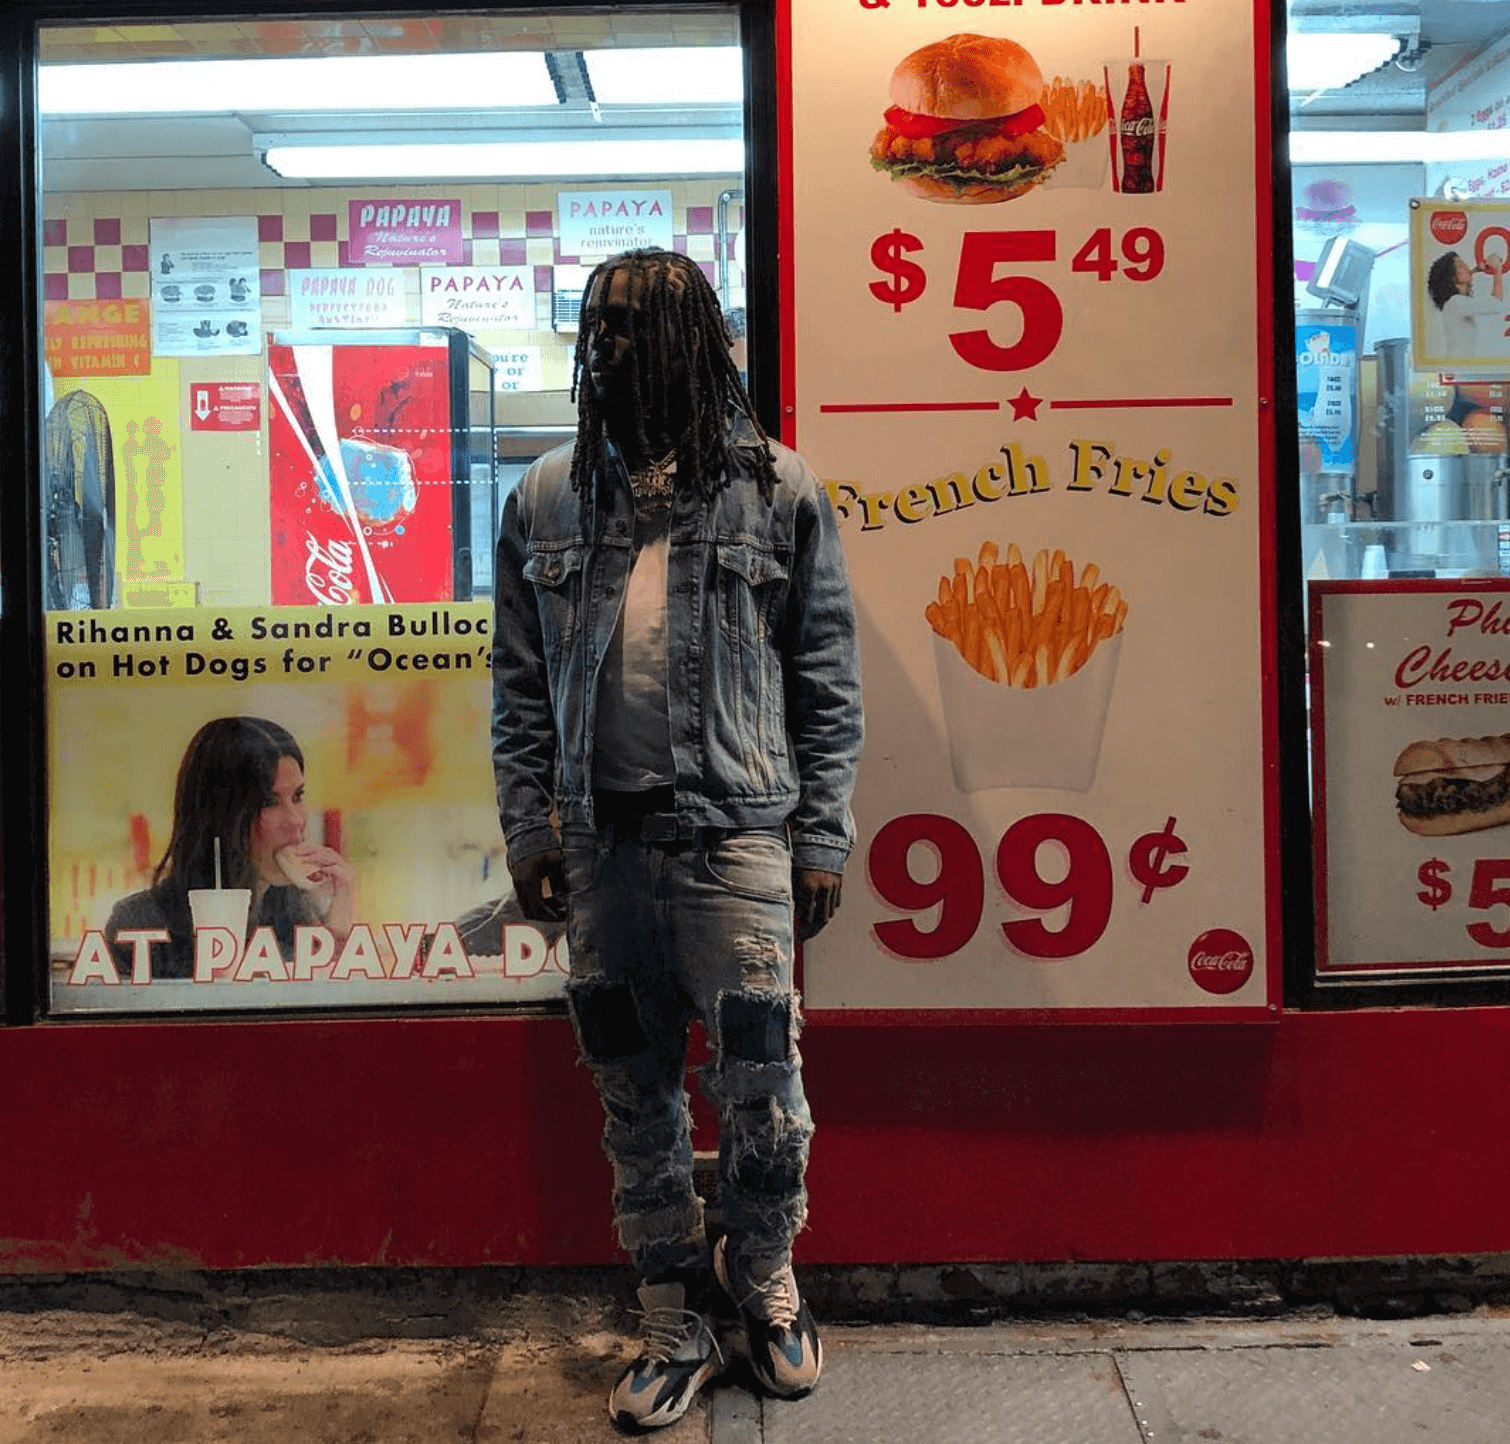 Chief Keef in the adidas Yeezy Boost 700